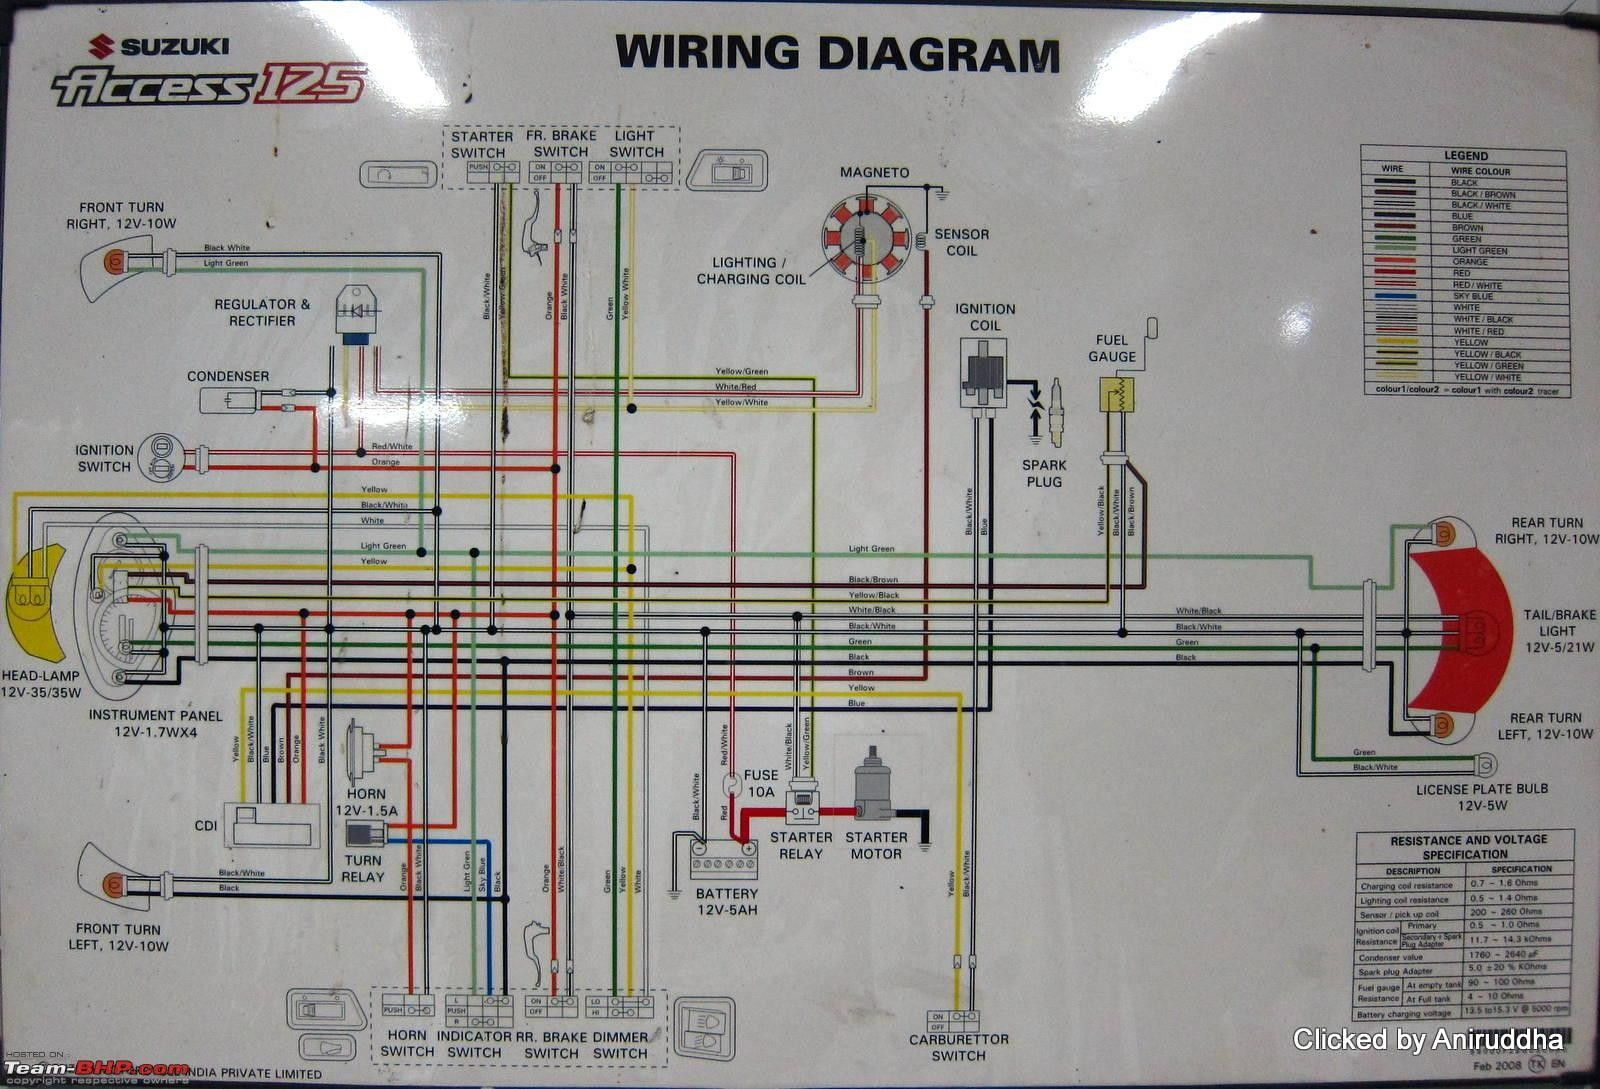 Suzuki Access 125 Wiring Diagram Motorcycle Wiring Electrical Wiring Diagram Electrical Diagram